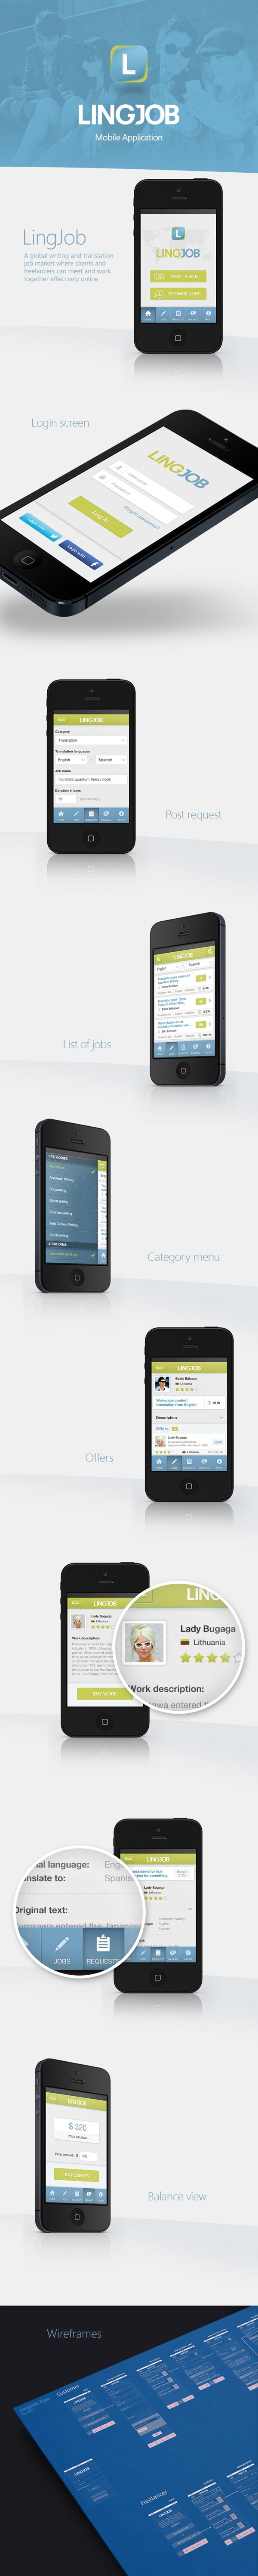 LingJob Mobile App by Filip Diumont, via Behance